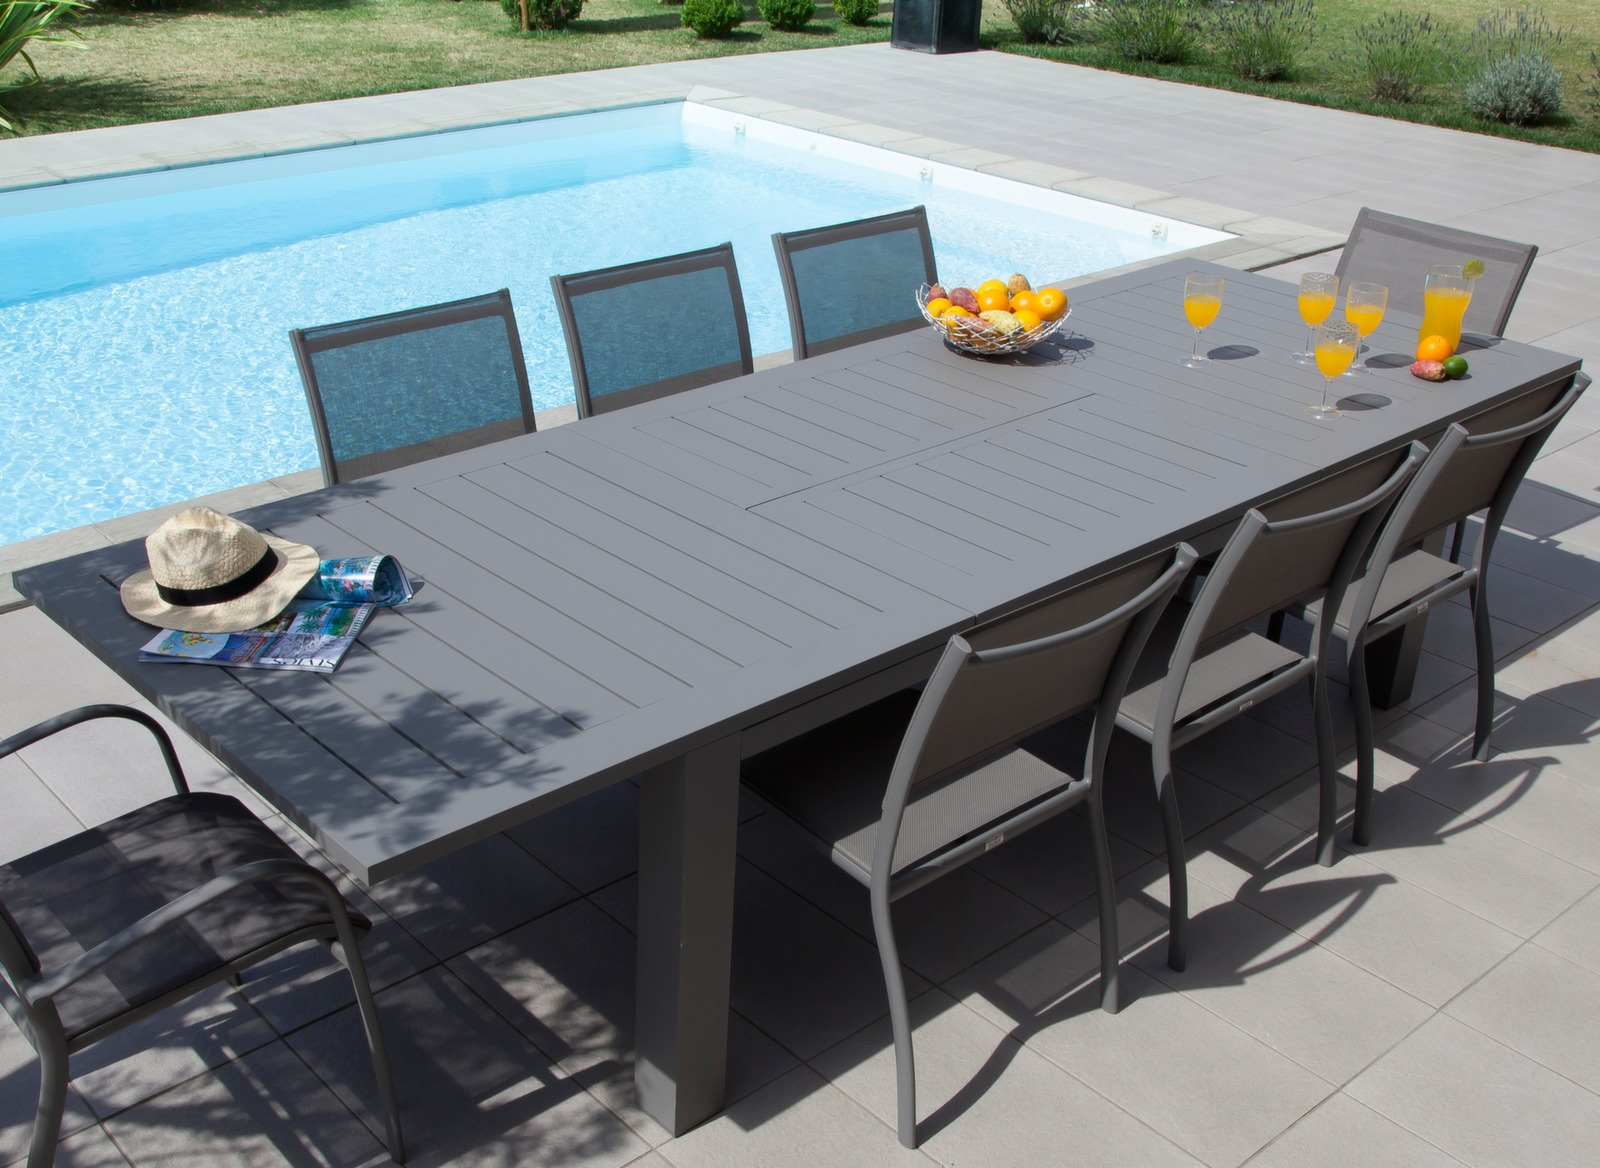 Table de jardin aluminium 12 places aurore oc o proloisirs for Table exterieur 12 places